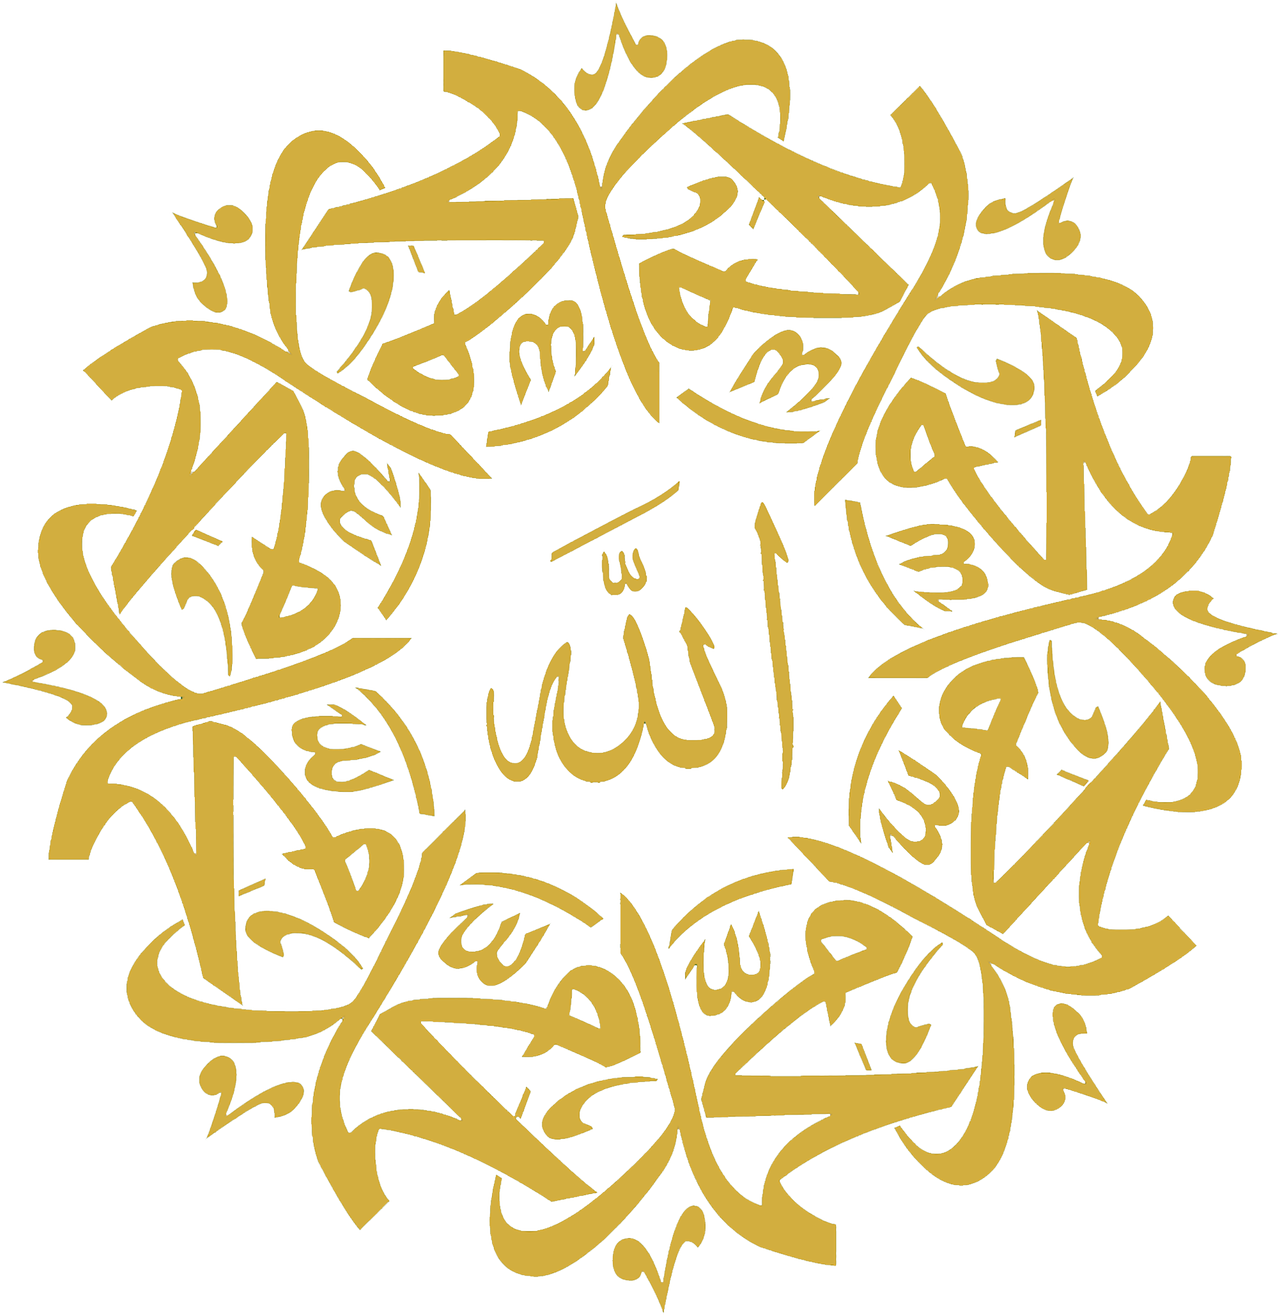 Muhammad pbuhahp and allah calligraphy 2 by sheikh1 on Allah calligraphy wallpaper